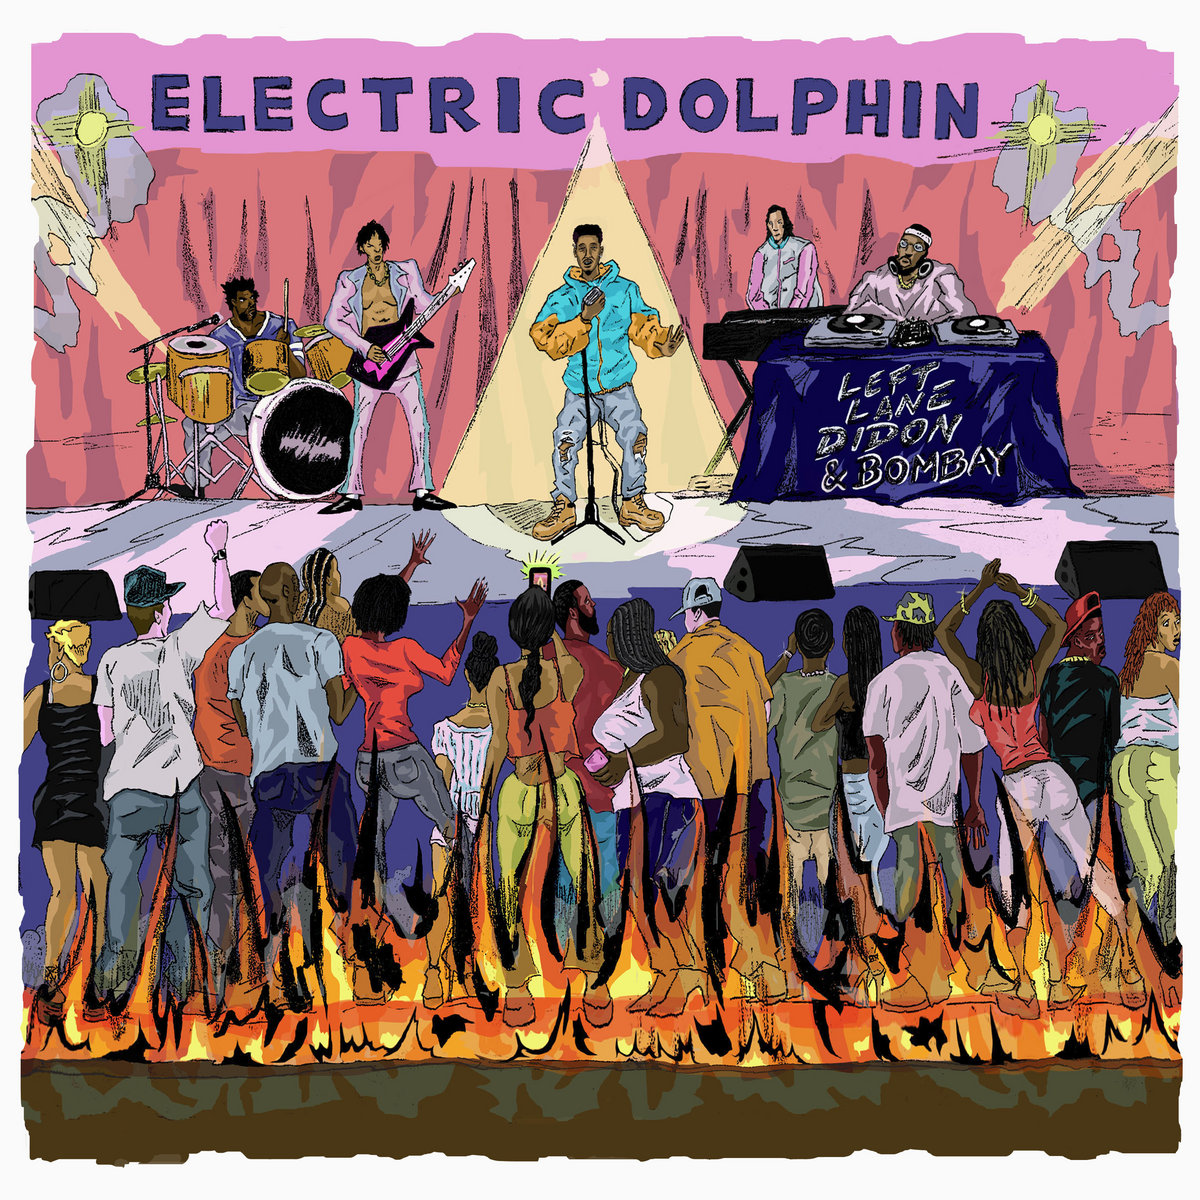 Left Lane Didon, Bombay Da Realest - The Electric Dolphin